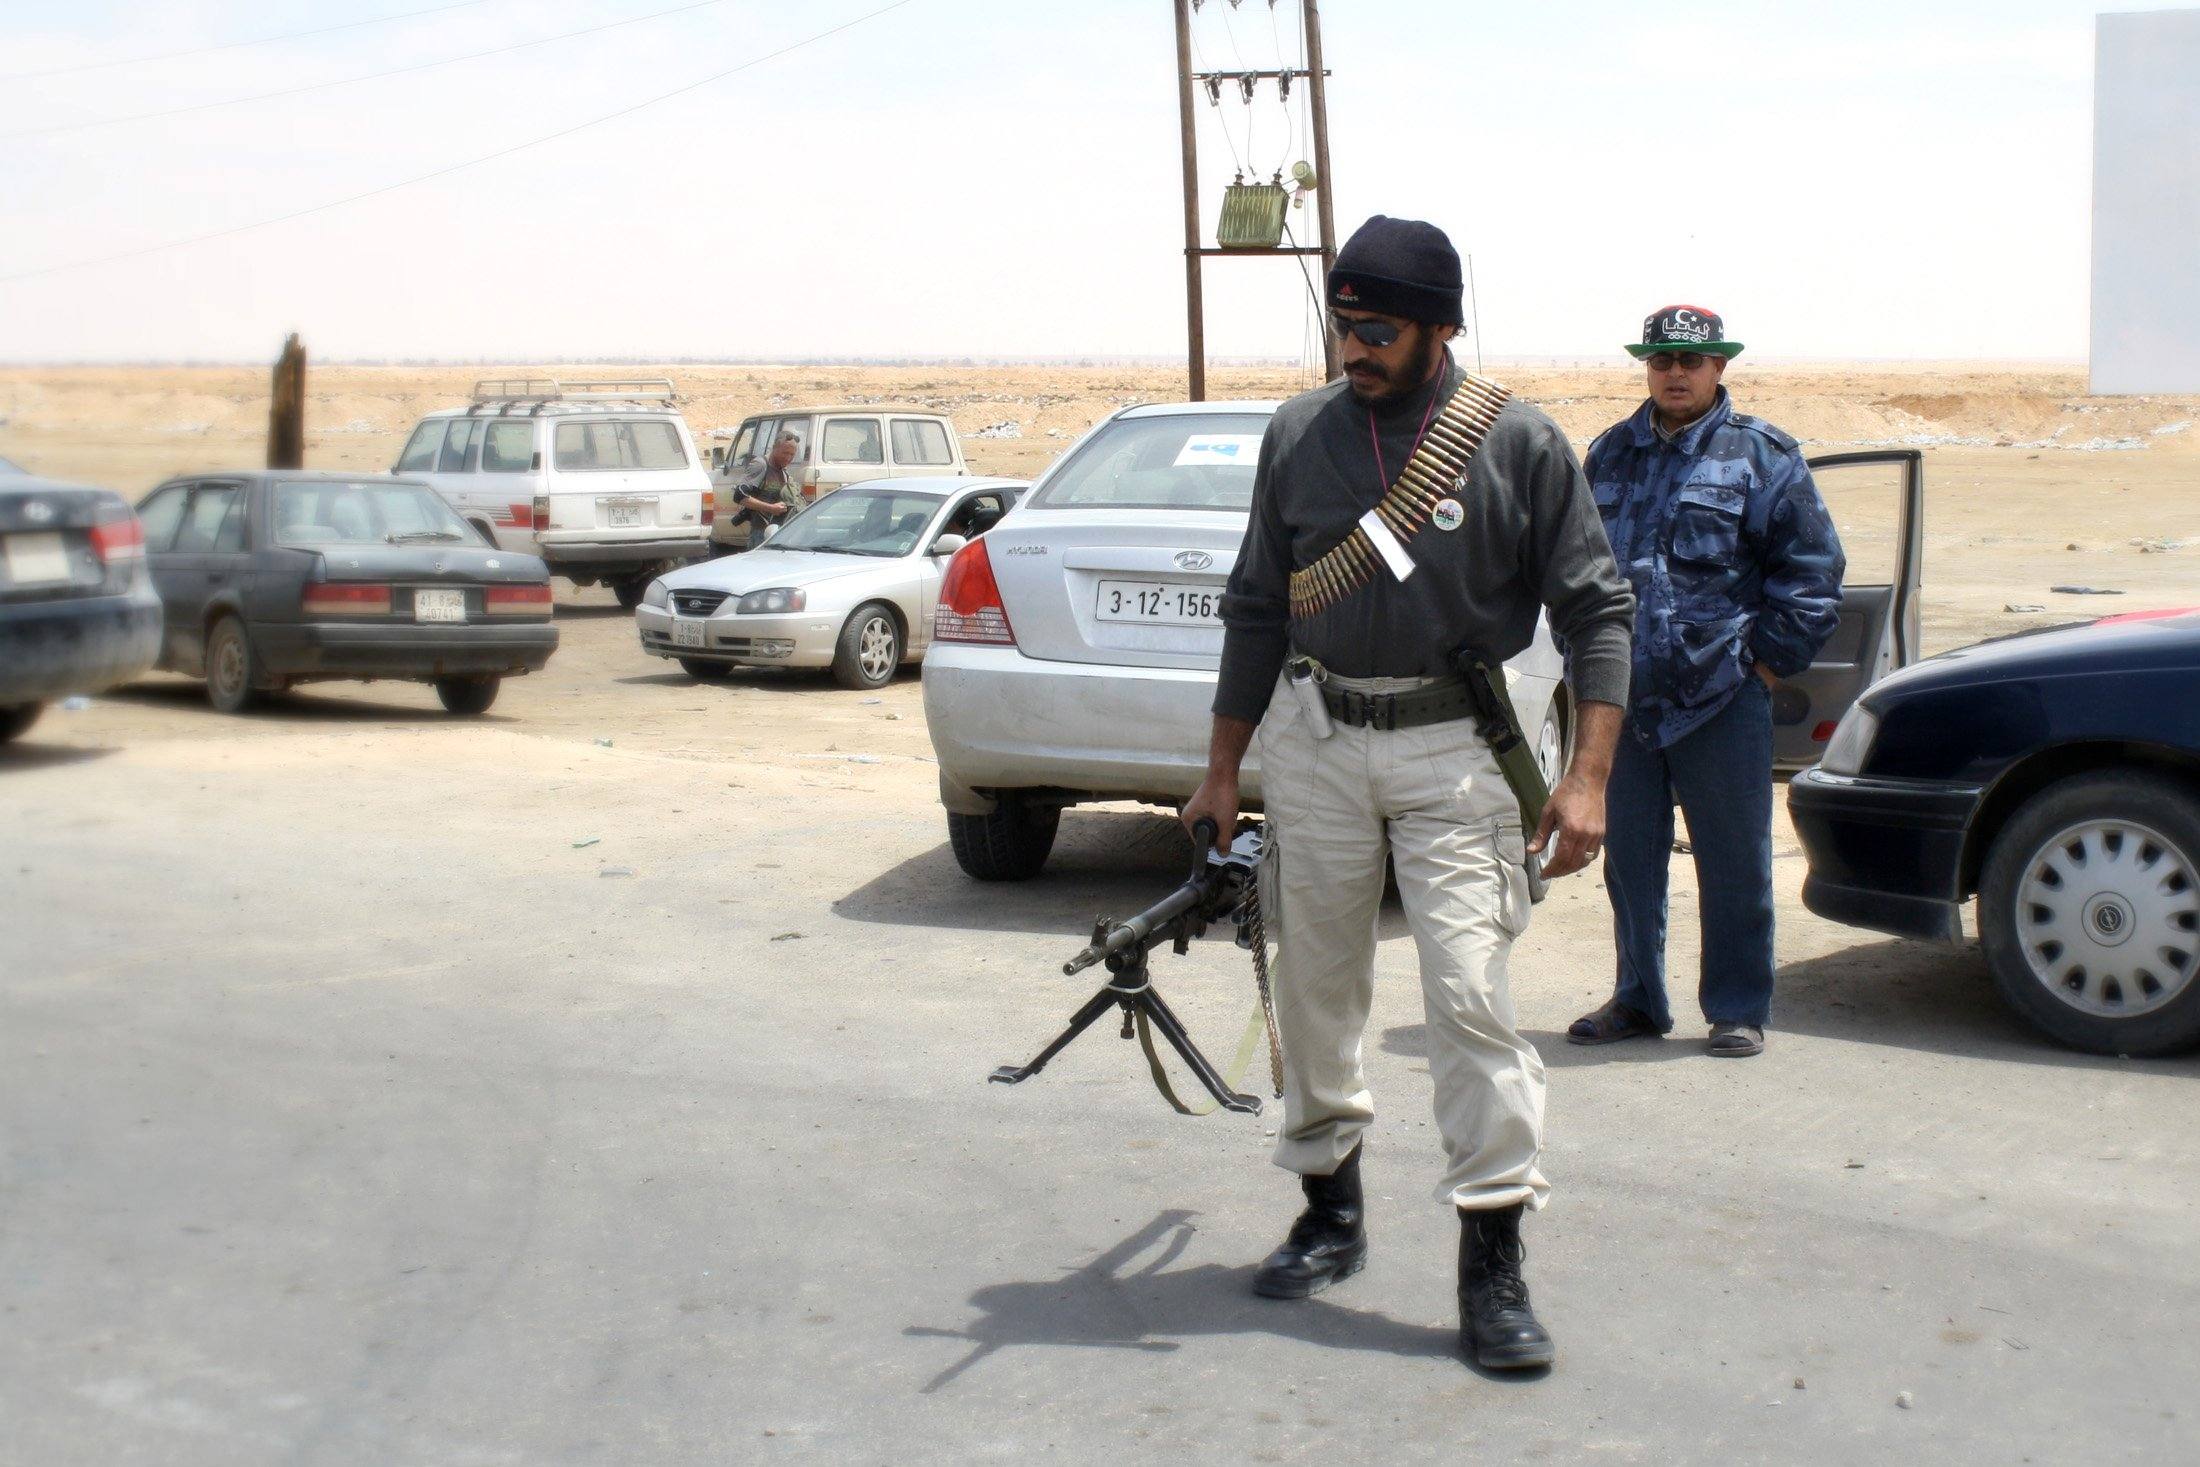 A Libyan rebel fighter arrives by car at the last checkpoint before the frontline, between Ajdabiya and Brega